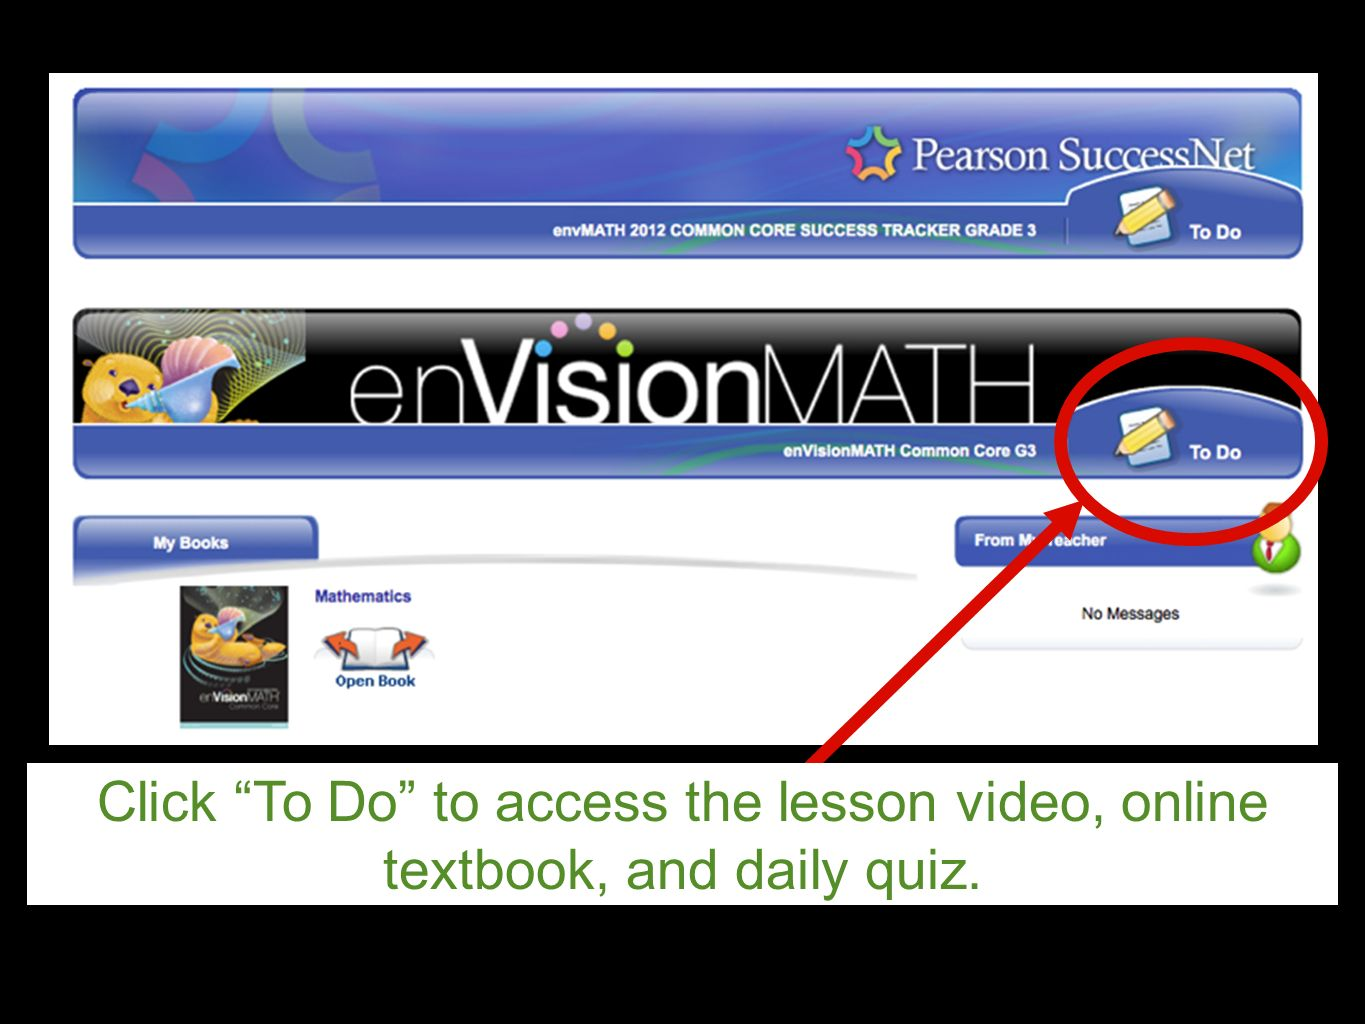 Click To Do to access the lesson video, online textbook, and daily quiz.